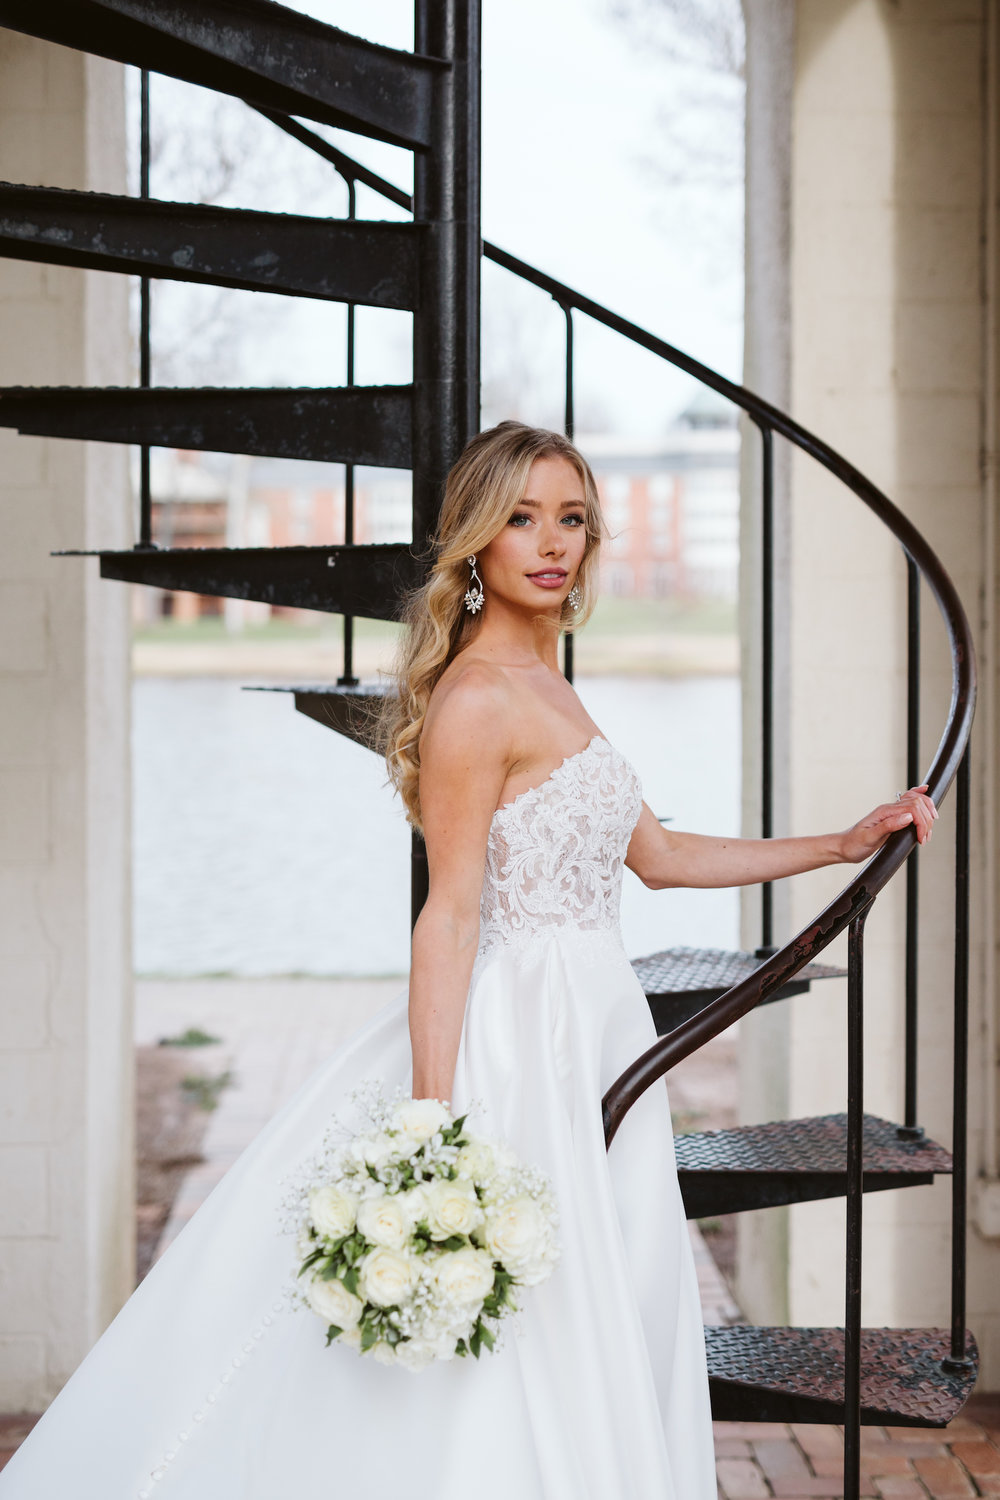 furman-university-bridals-paige-208.JPG